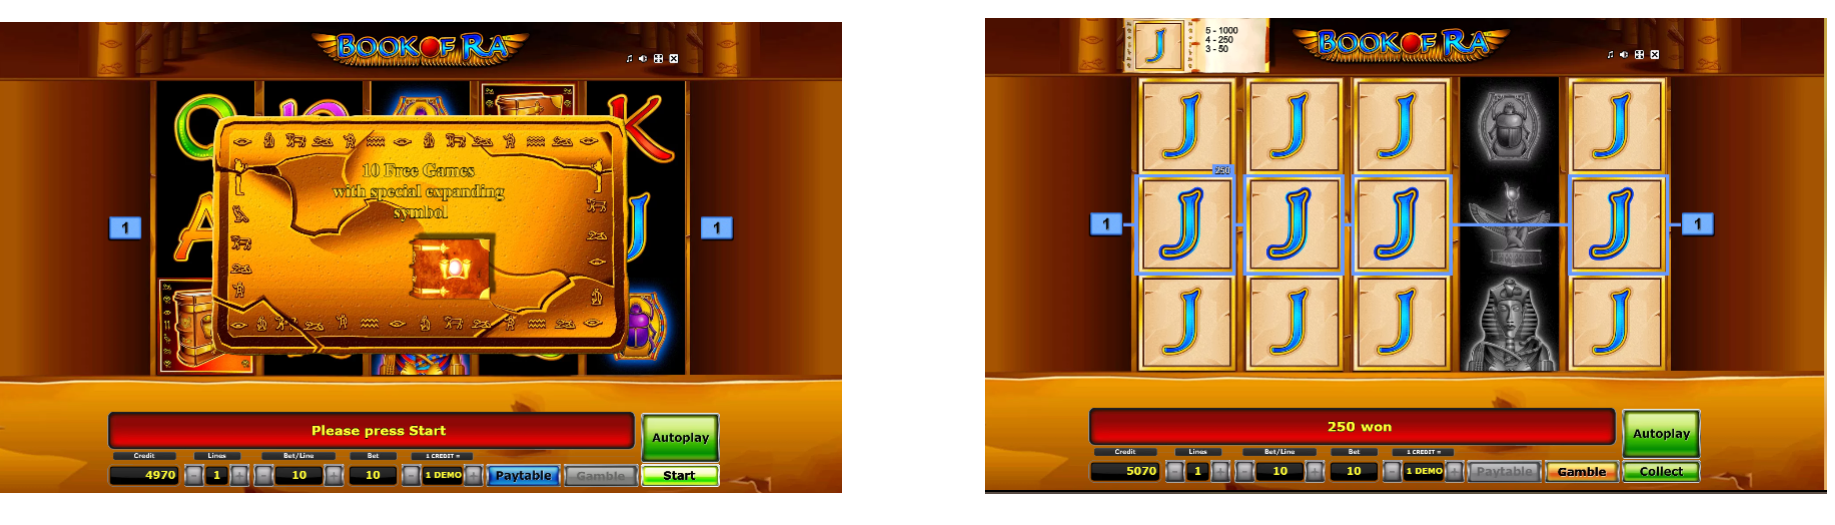 Book of Ra Slot Game-free spins